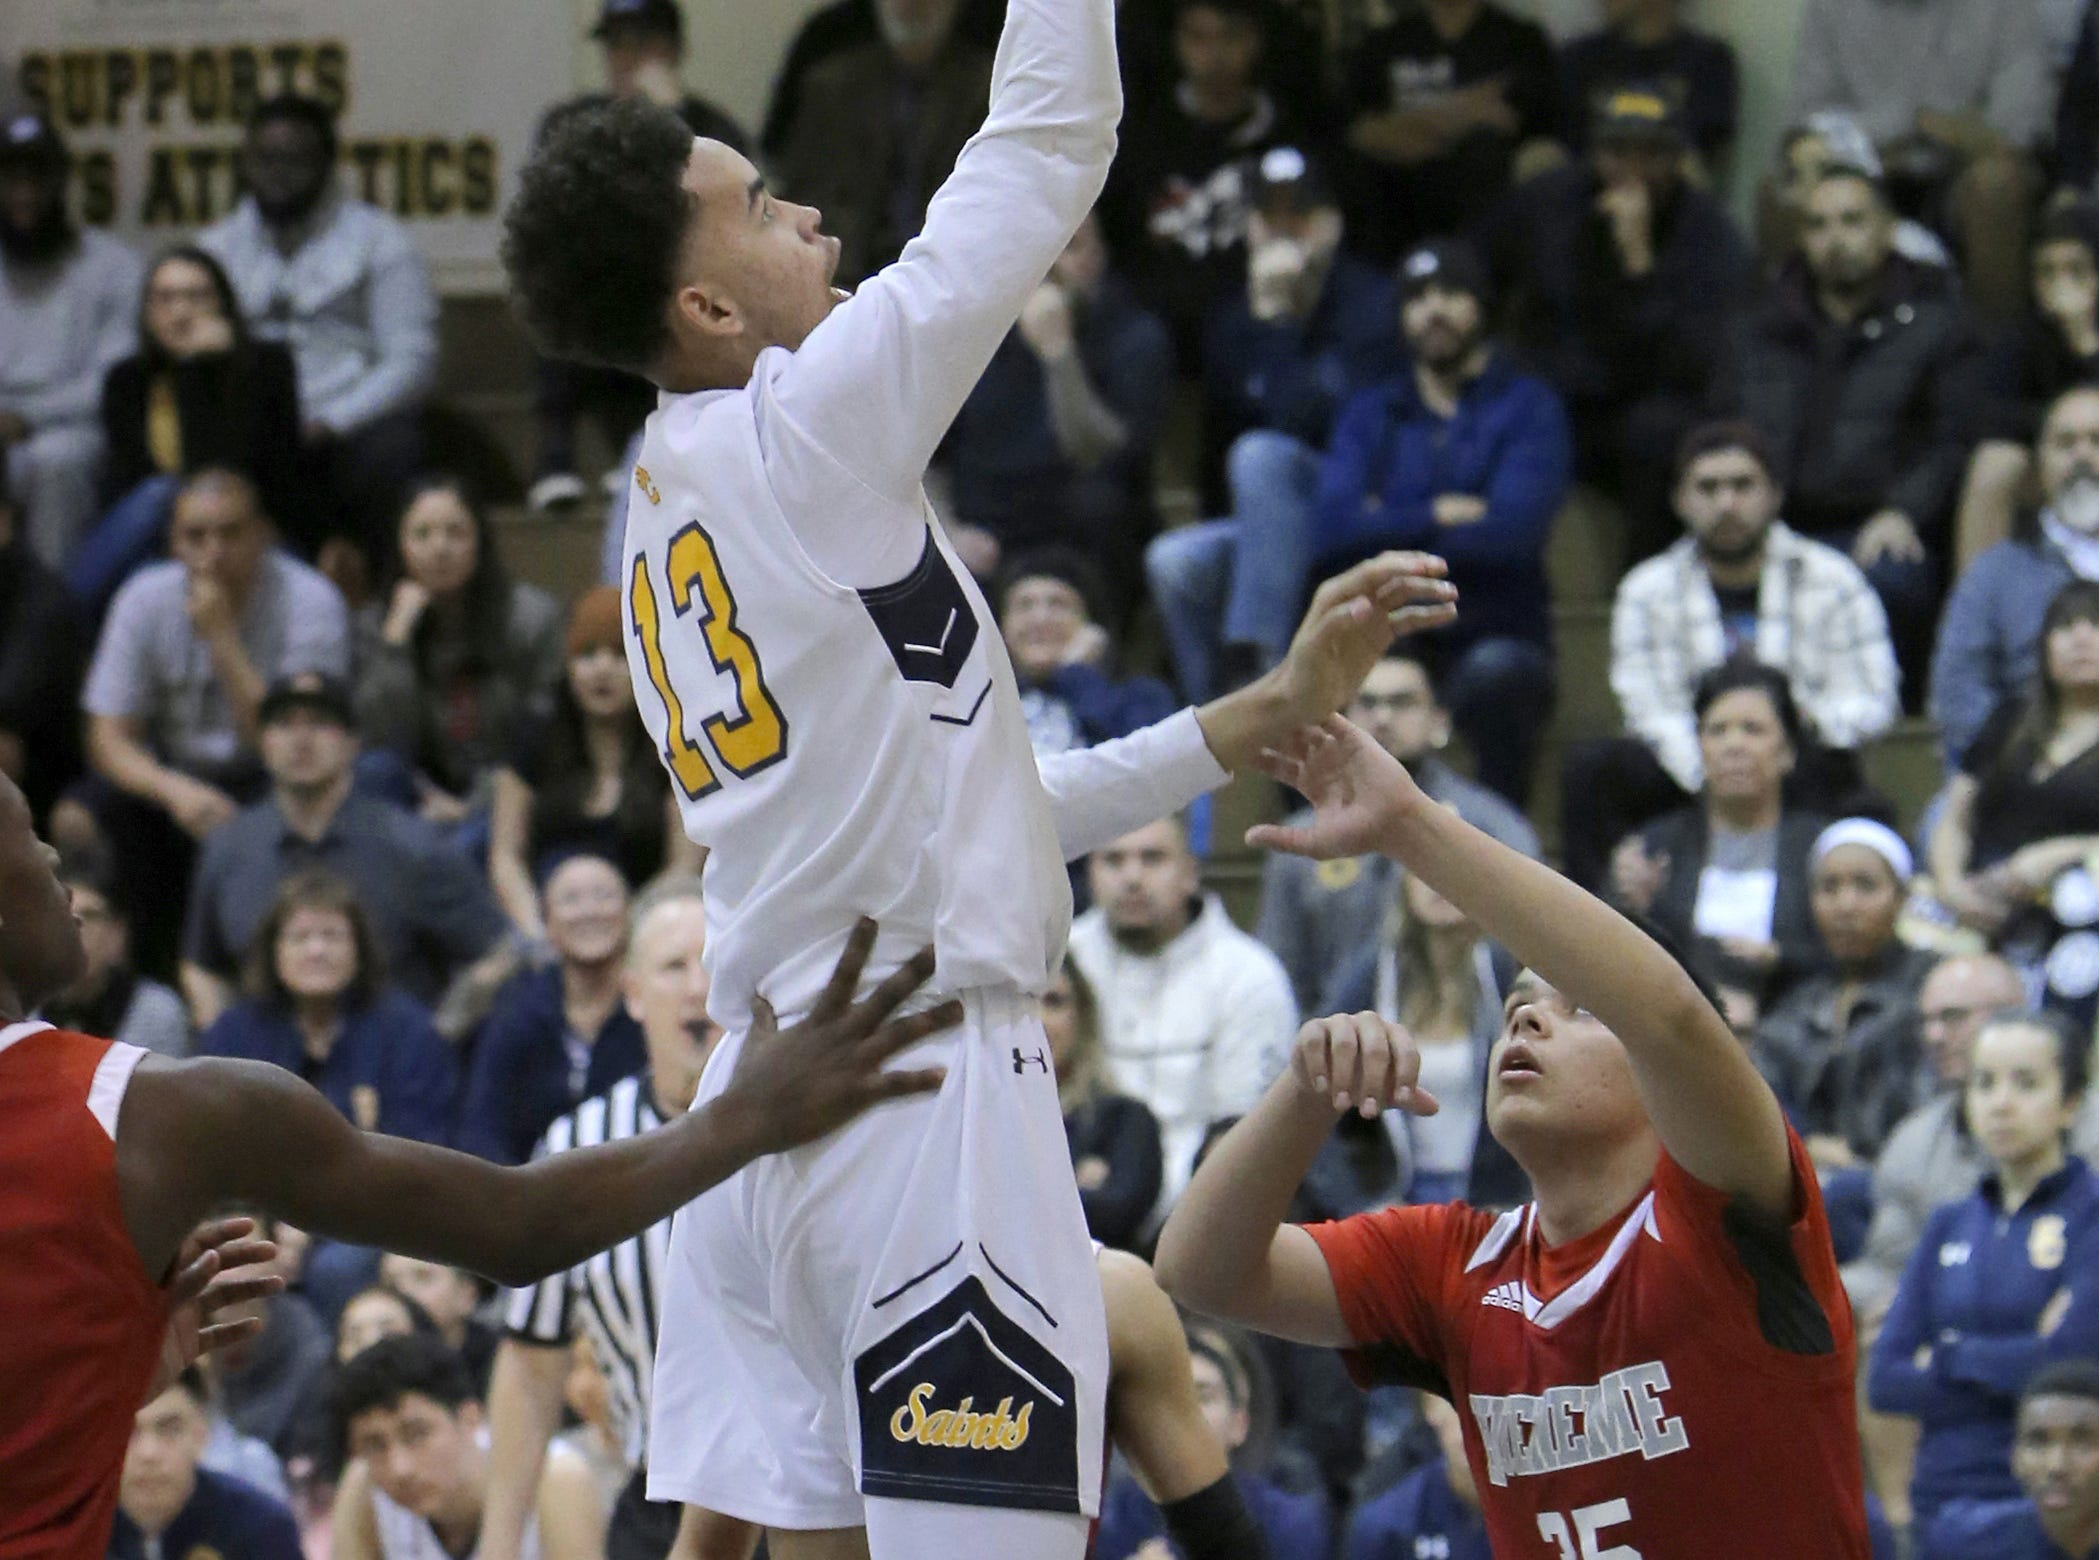 Santa Clara's Nick Abbott goes up for an easy two as Hueneme's Antonio Ayala, right, looks on during  Saturday's CIF-Southern Section Division 5AA semifinal at Santa Clara High. The host Saints won 51-37.